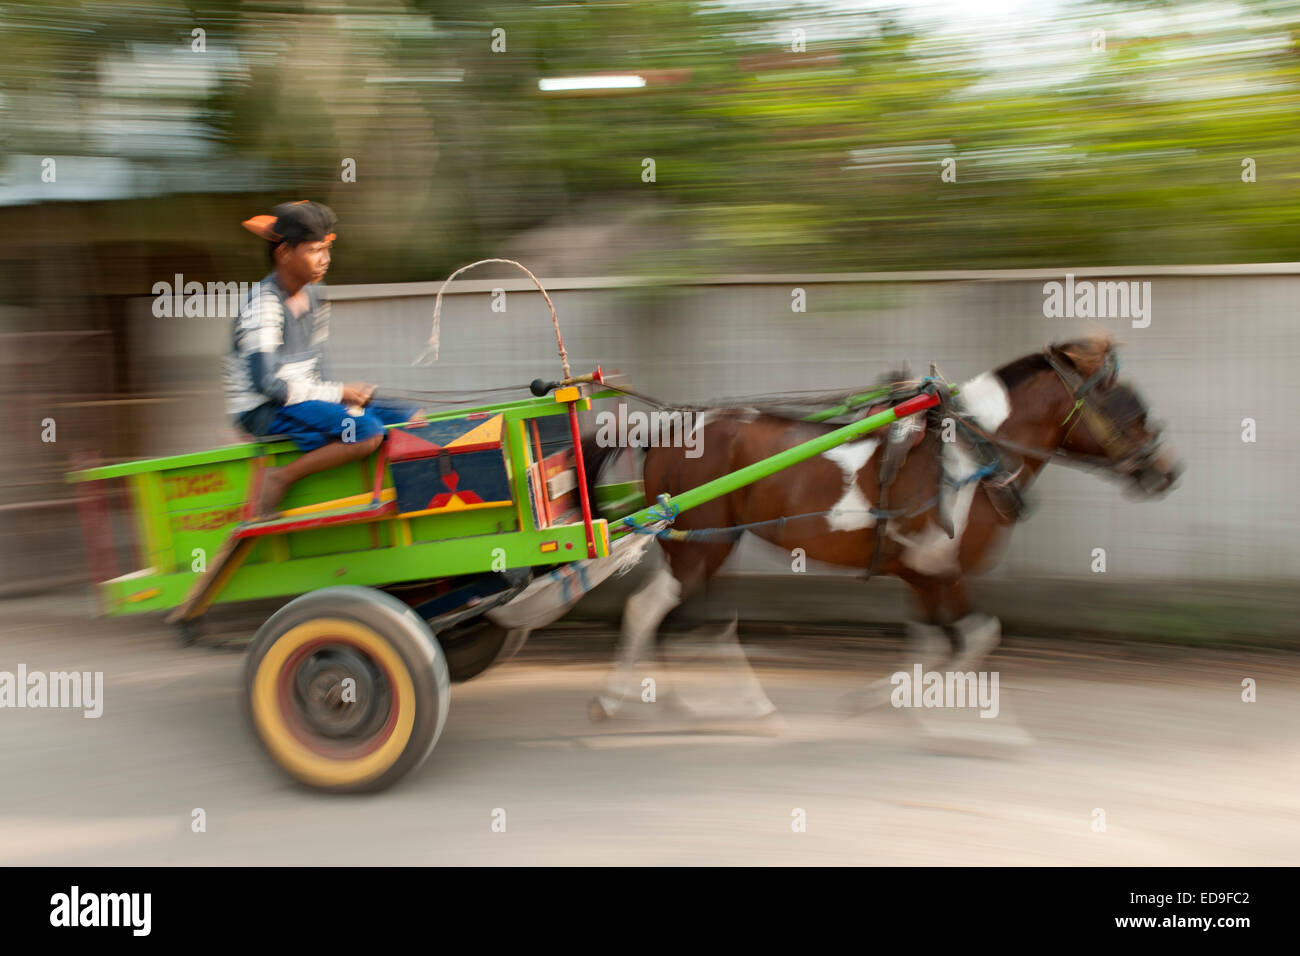 Horse cart on Gili Air island, Indonesia. - Stock Image